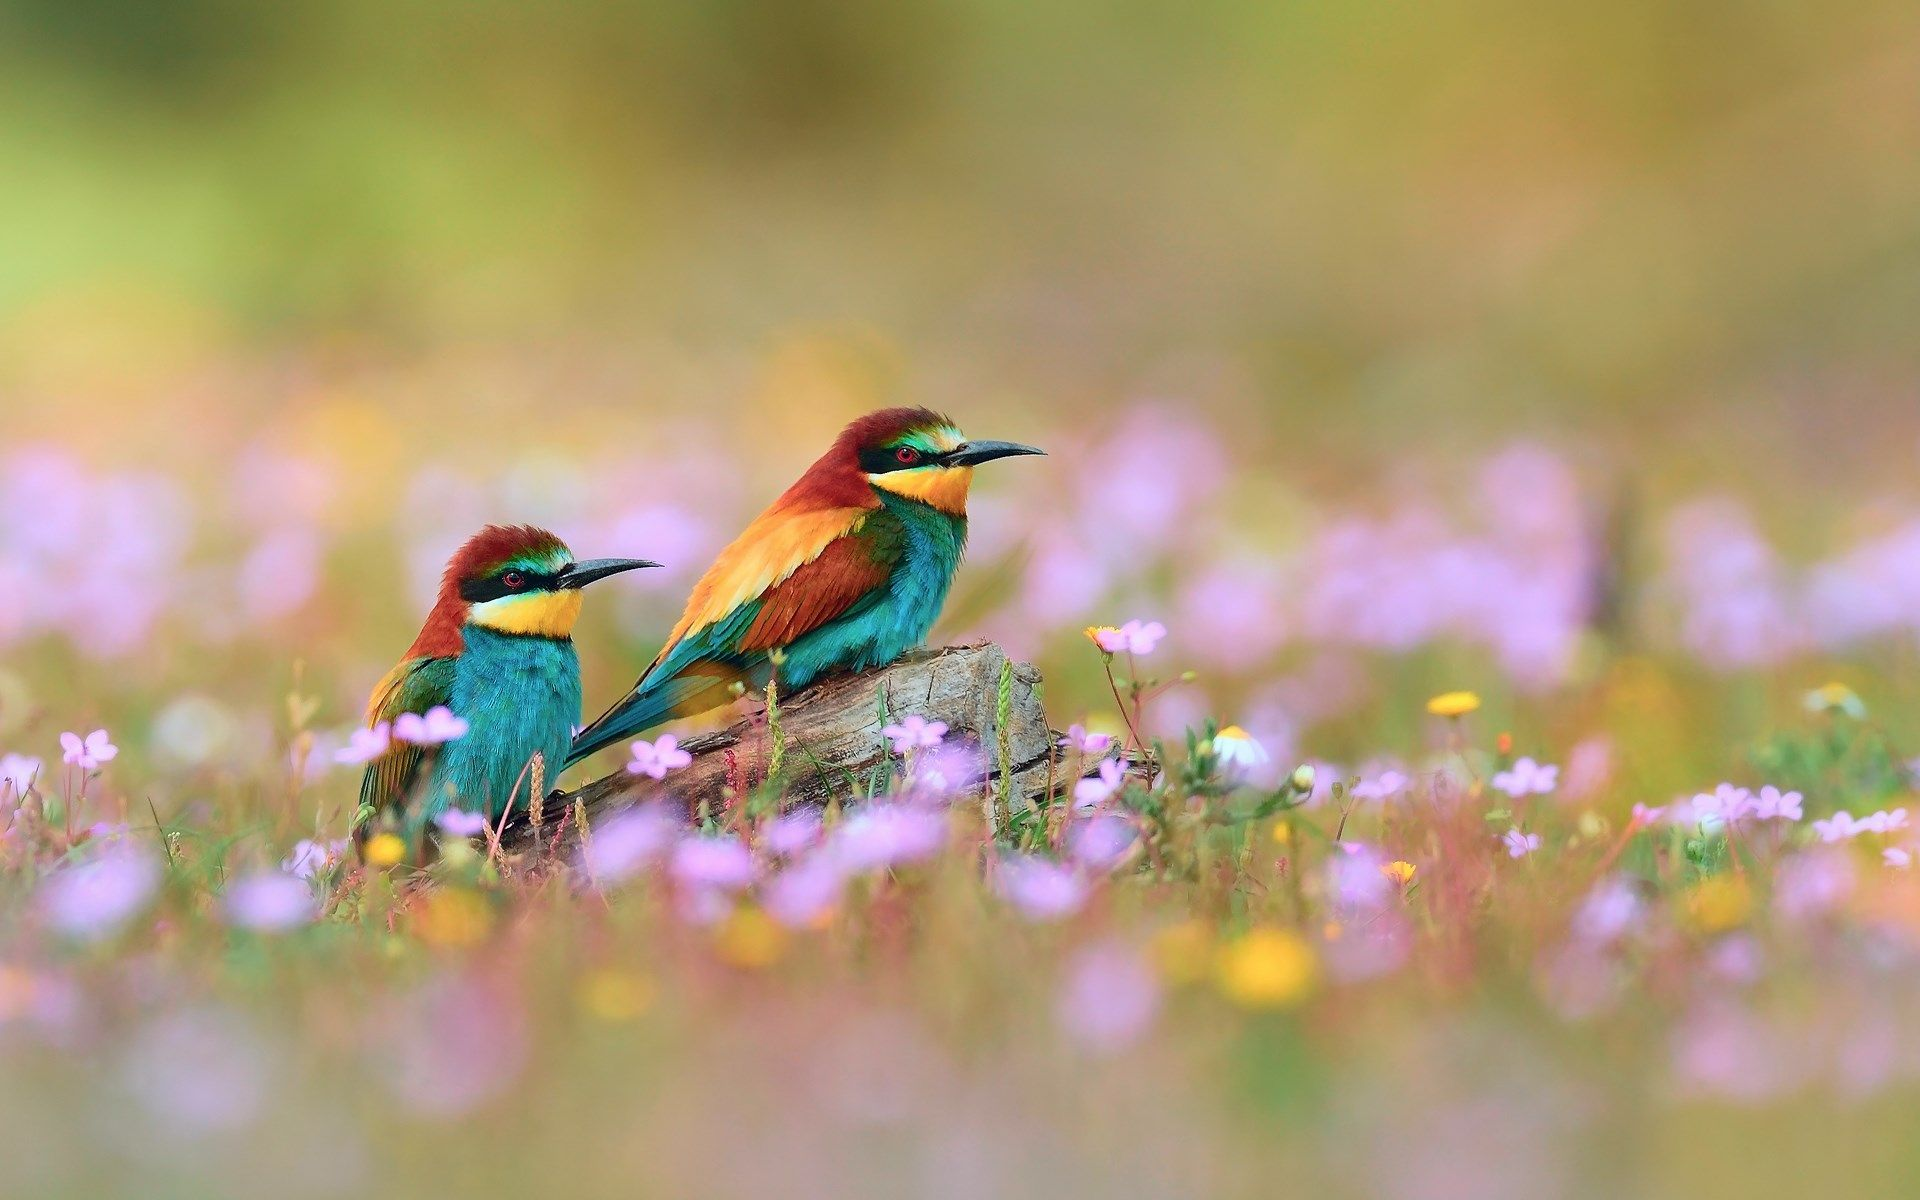 Wallpaper With Birds Colorful Birds Wallpaper  Wallpaper  Pinterest  Colorful Birds